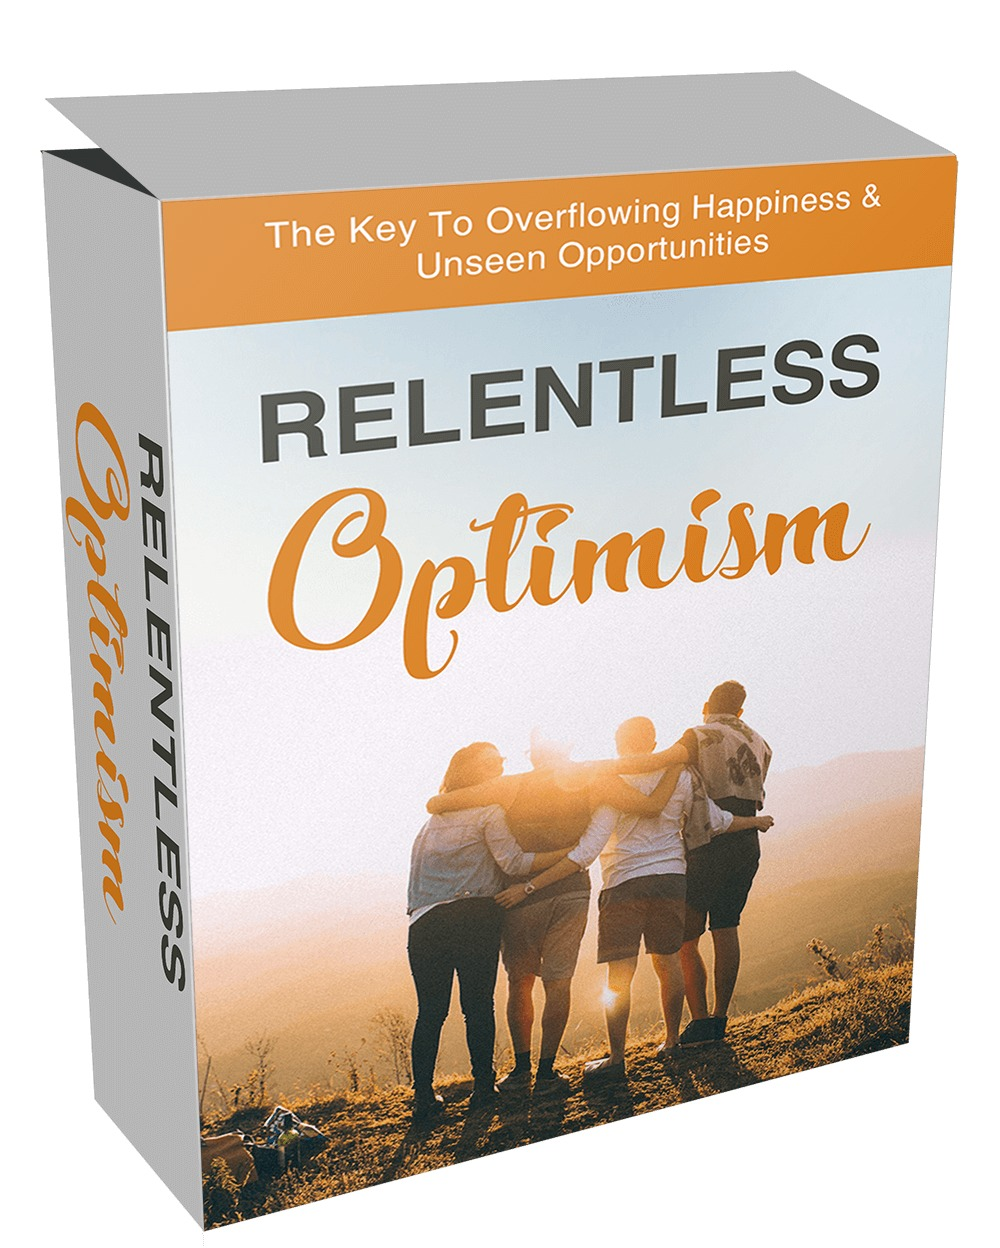 Relentless Optimism